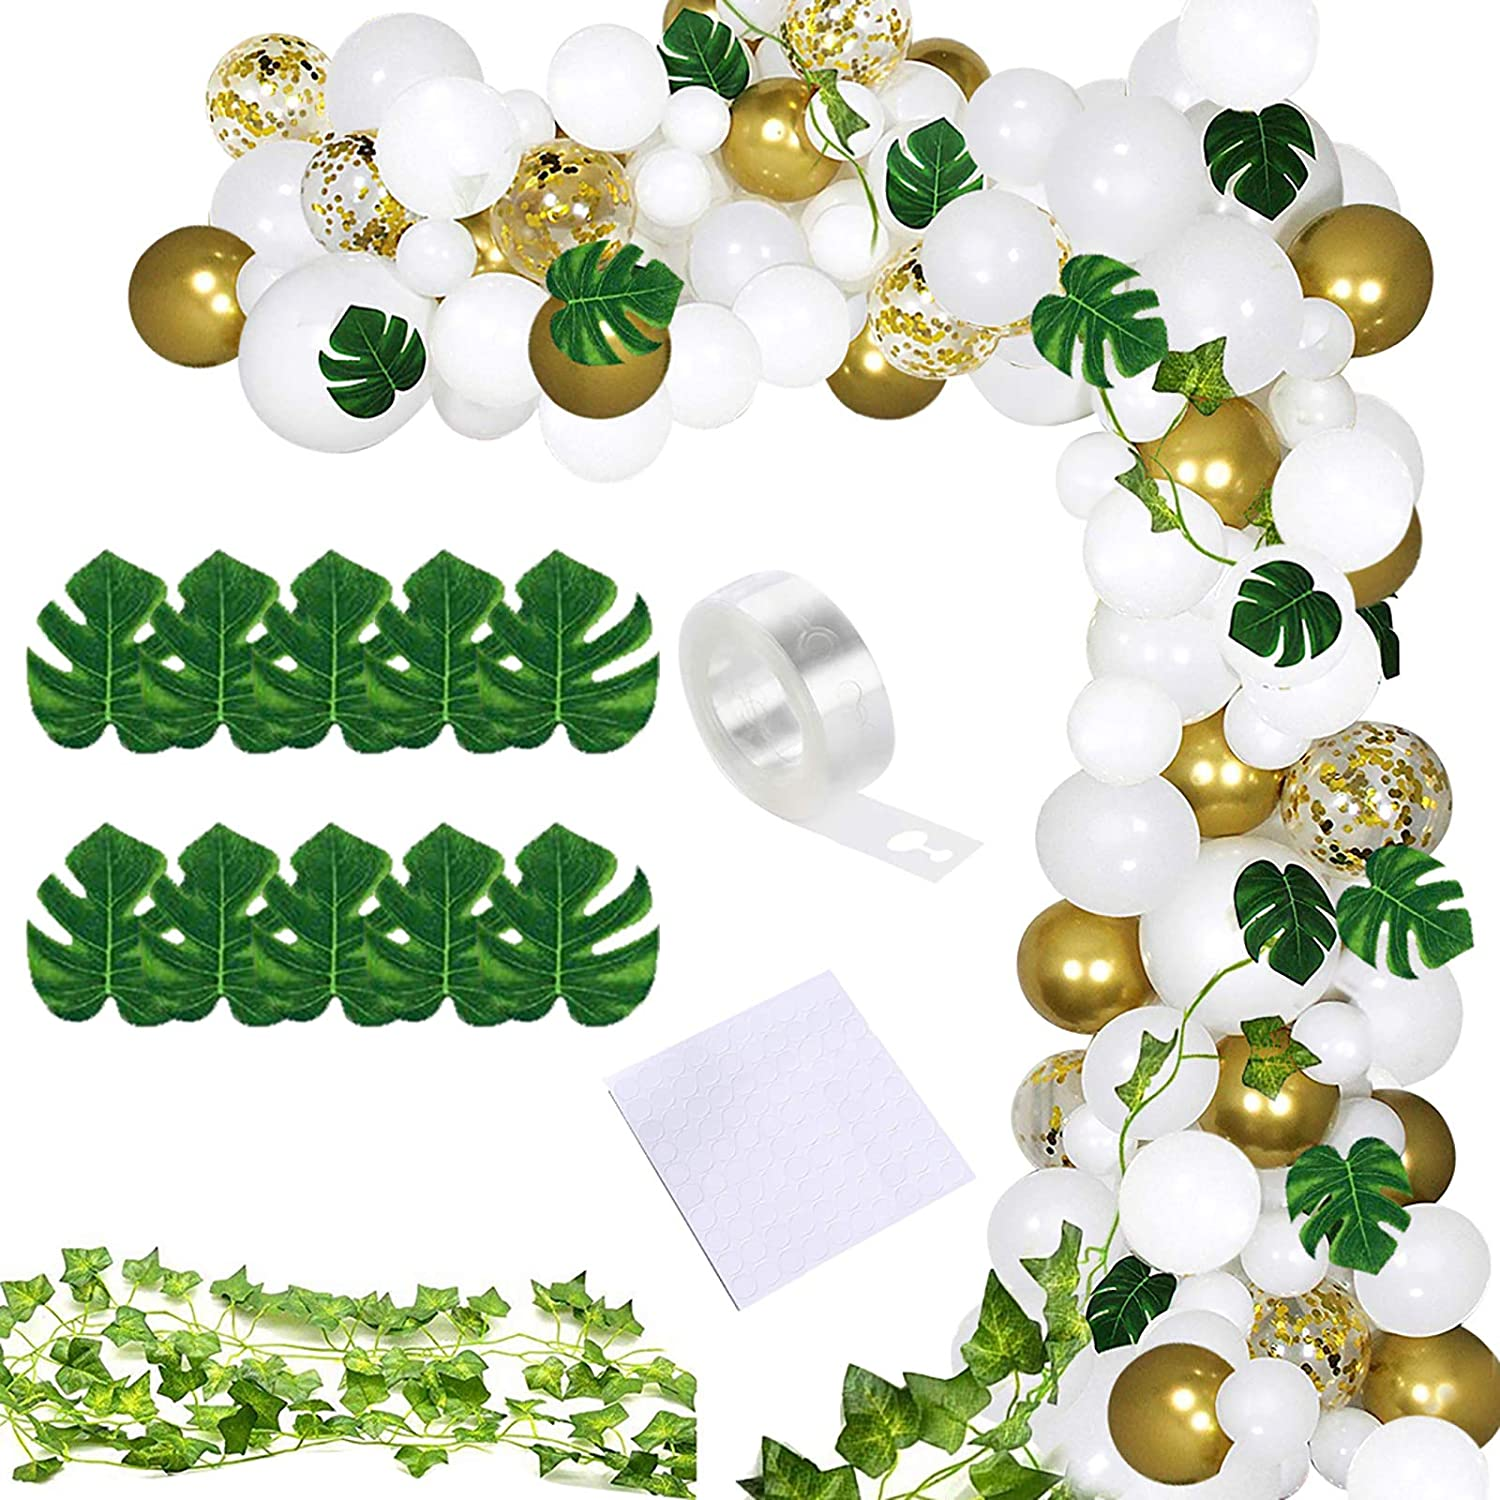 White Gold Confetti Balloon Graland Kit, 124PCS Jungle Theme Party Décor Gold Latex Party Balloons Including Palm Leaves Green Ivy Leaf Garland Vines Decoration for Wedding Birthday